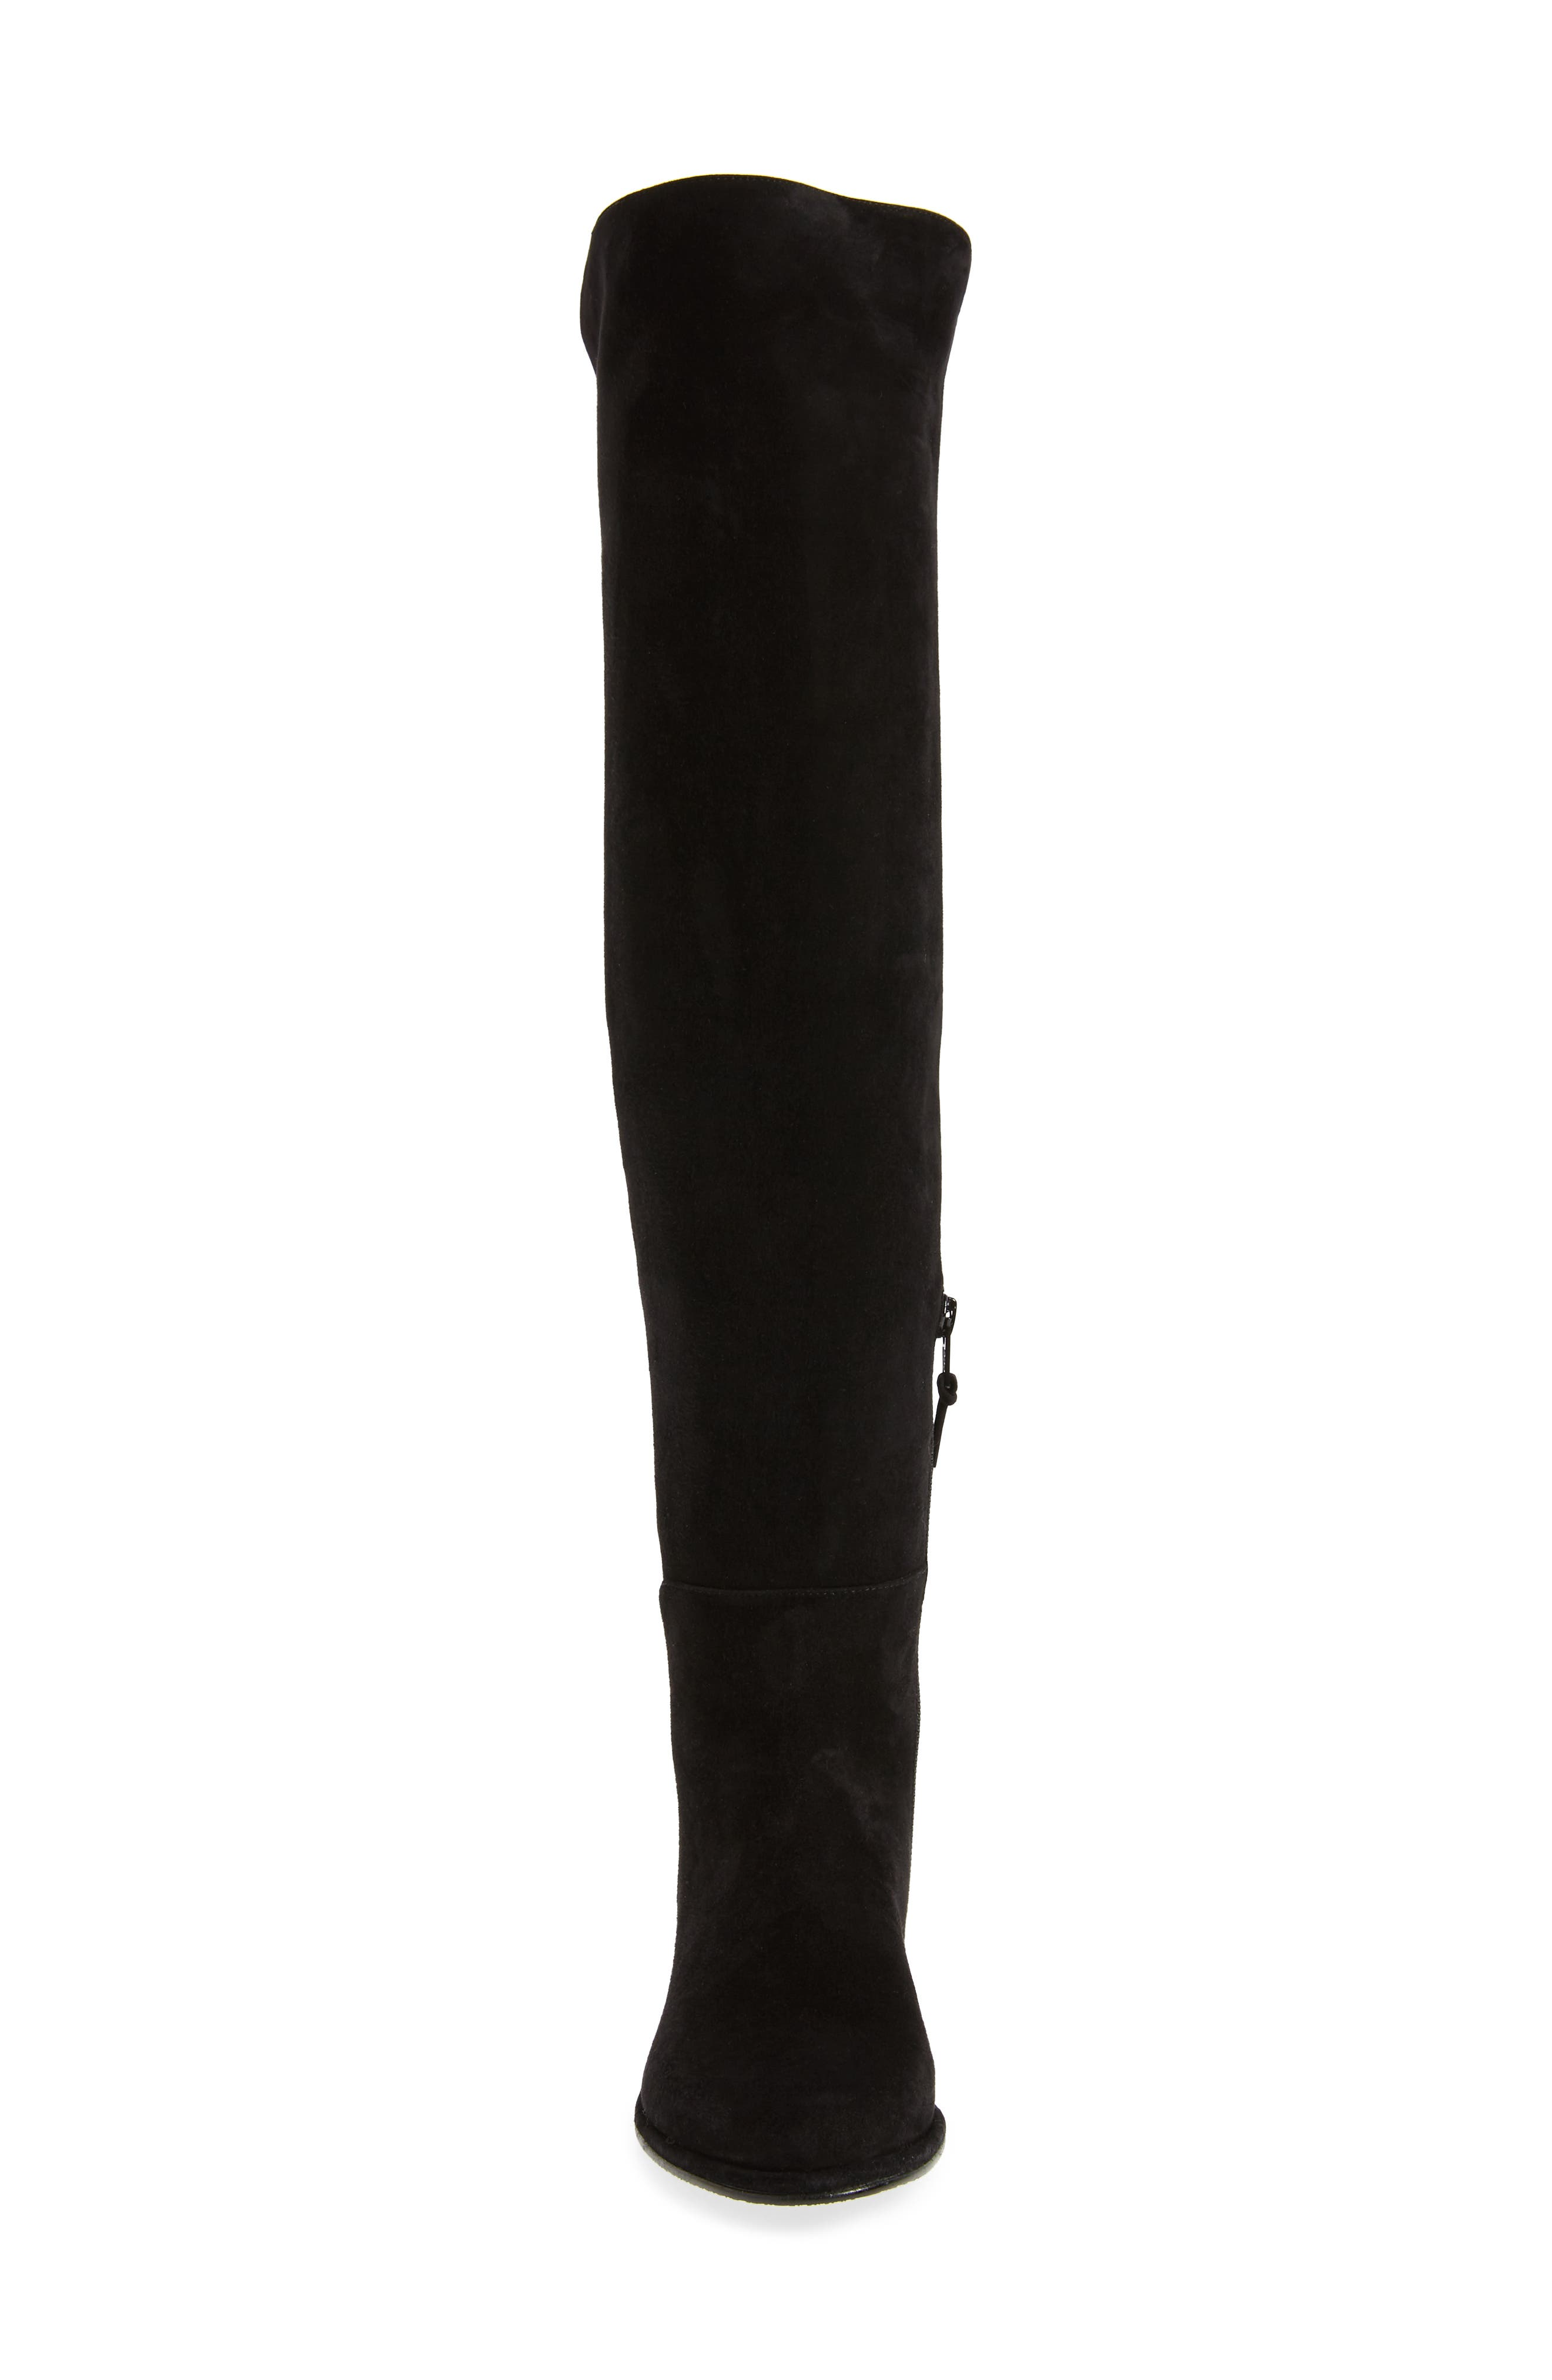 Allgood Over the Knee Boot,                             Alternate thumbnail 4, color,                             001